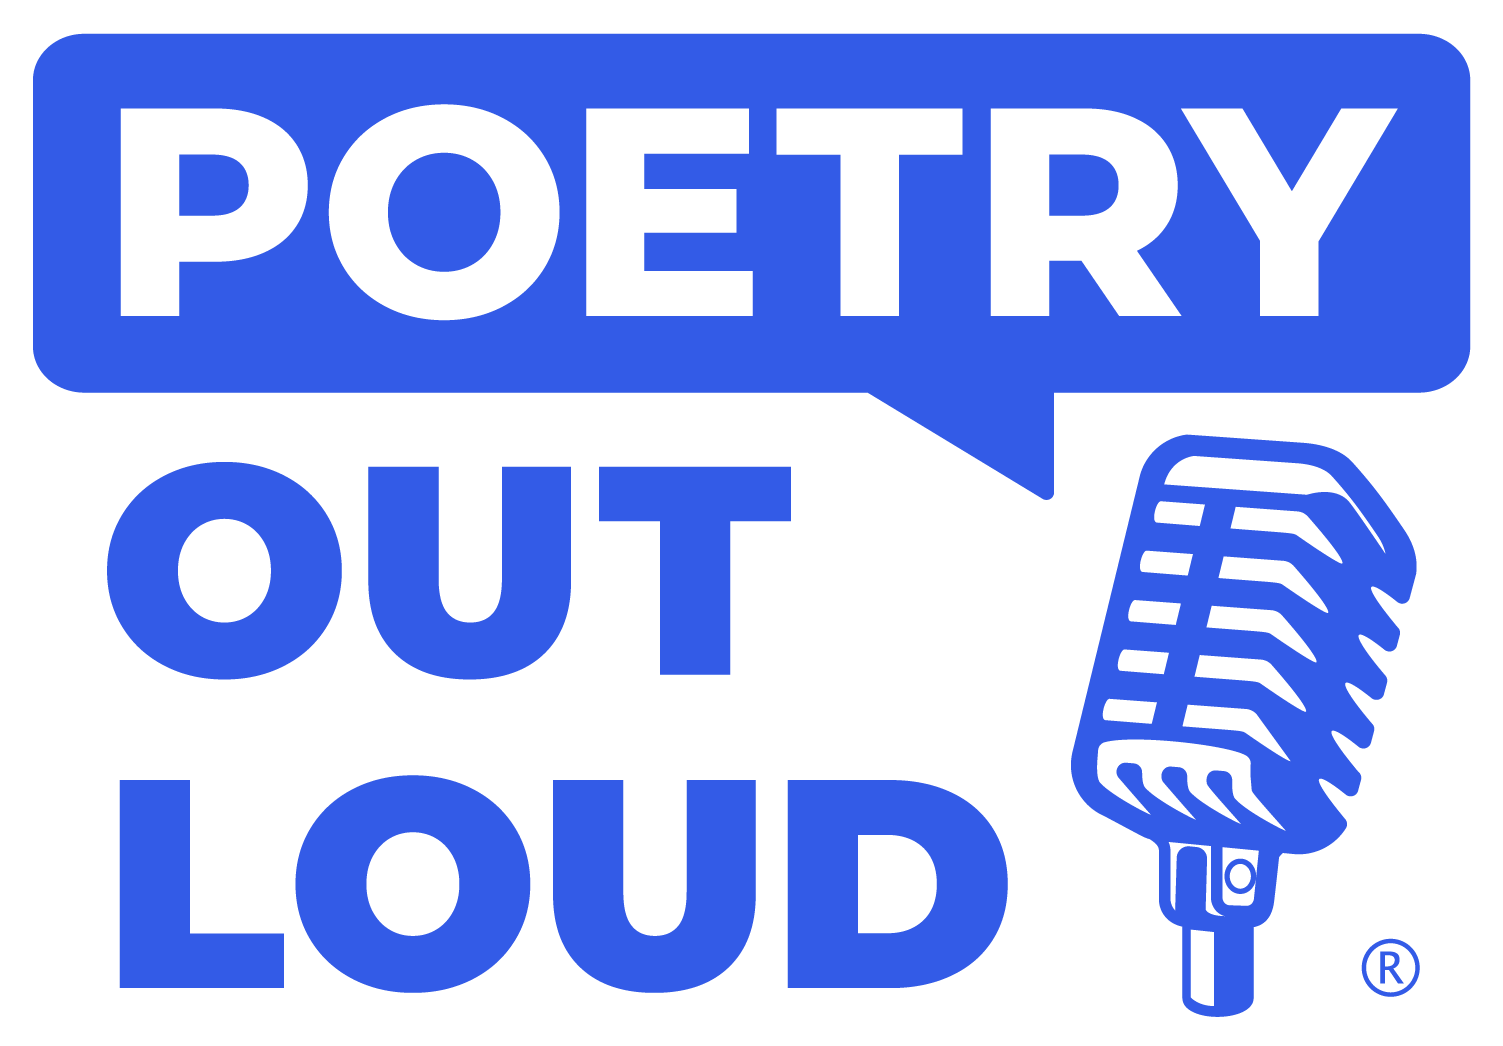 poetryoutloud2020